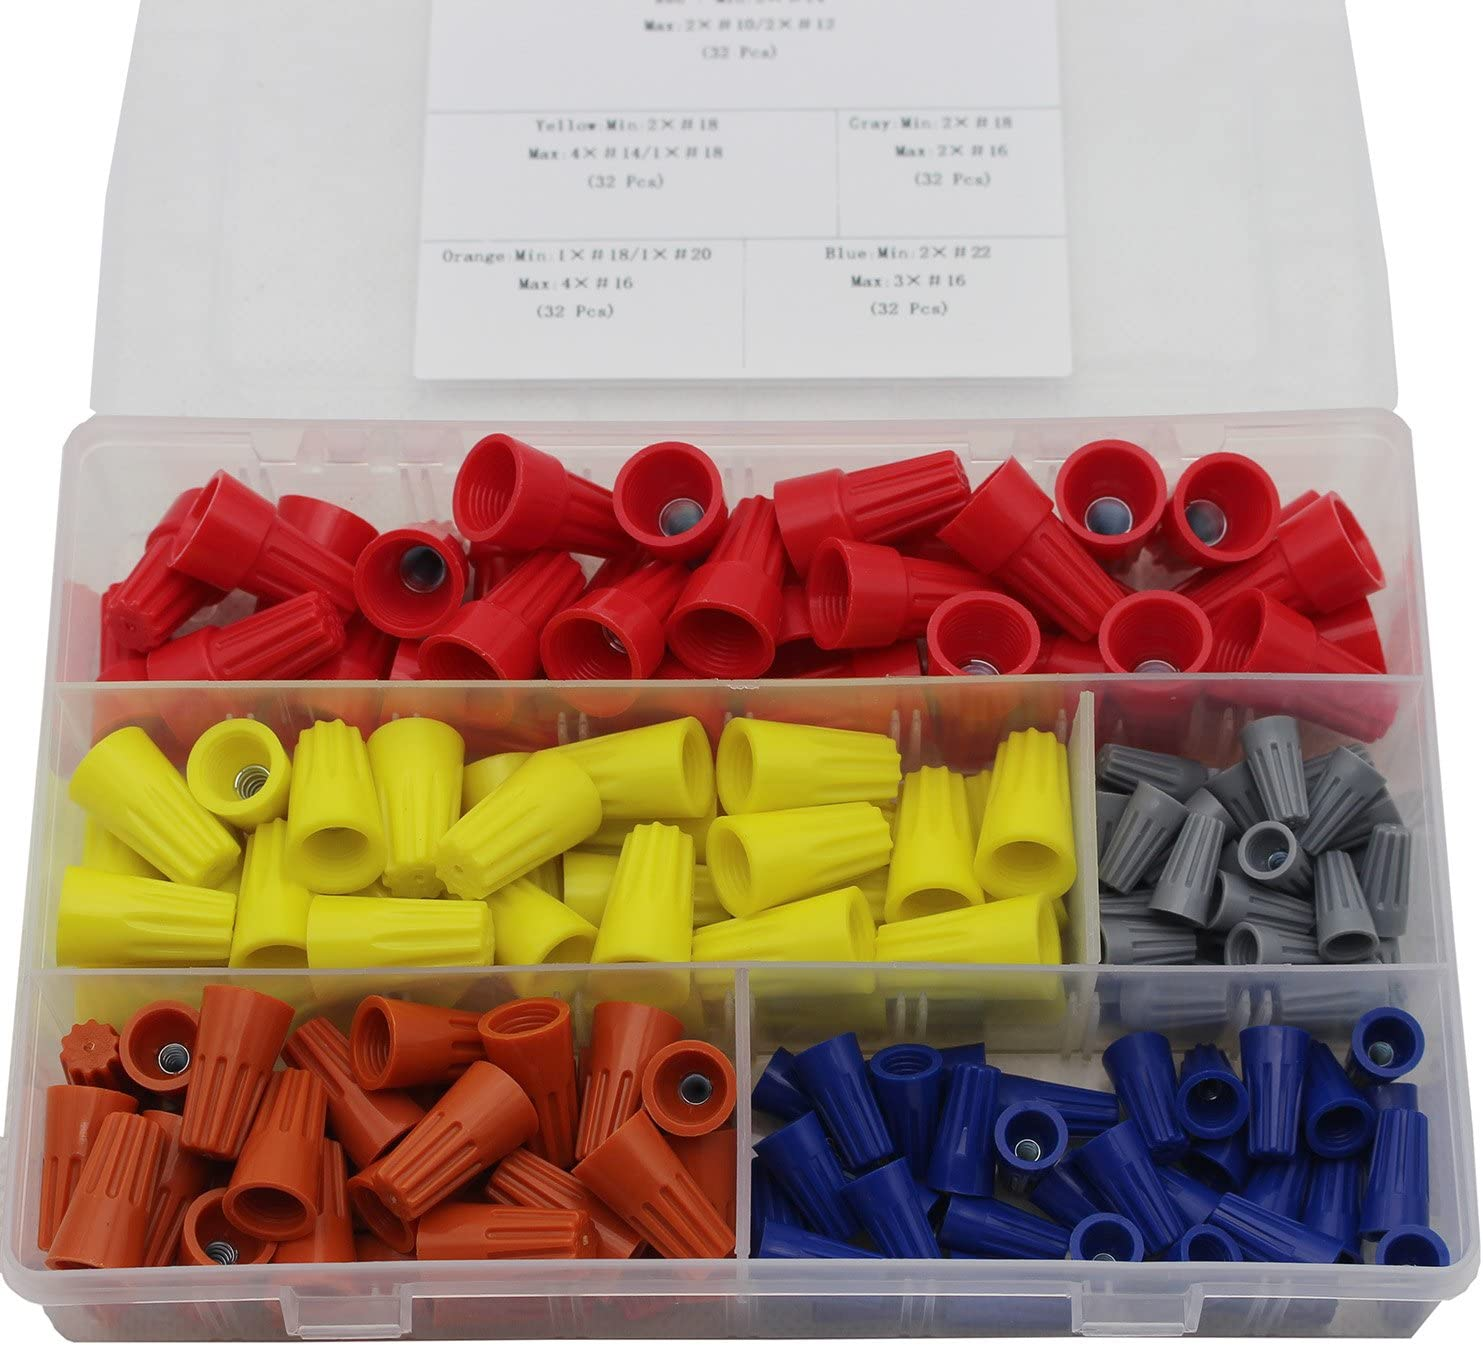 TwistNuts Caps Wire Connection,Spring Insert Wire Nuts Assortment kit 240 Pcs Electrical Wire ConnectorsScrew Terminals